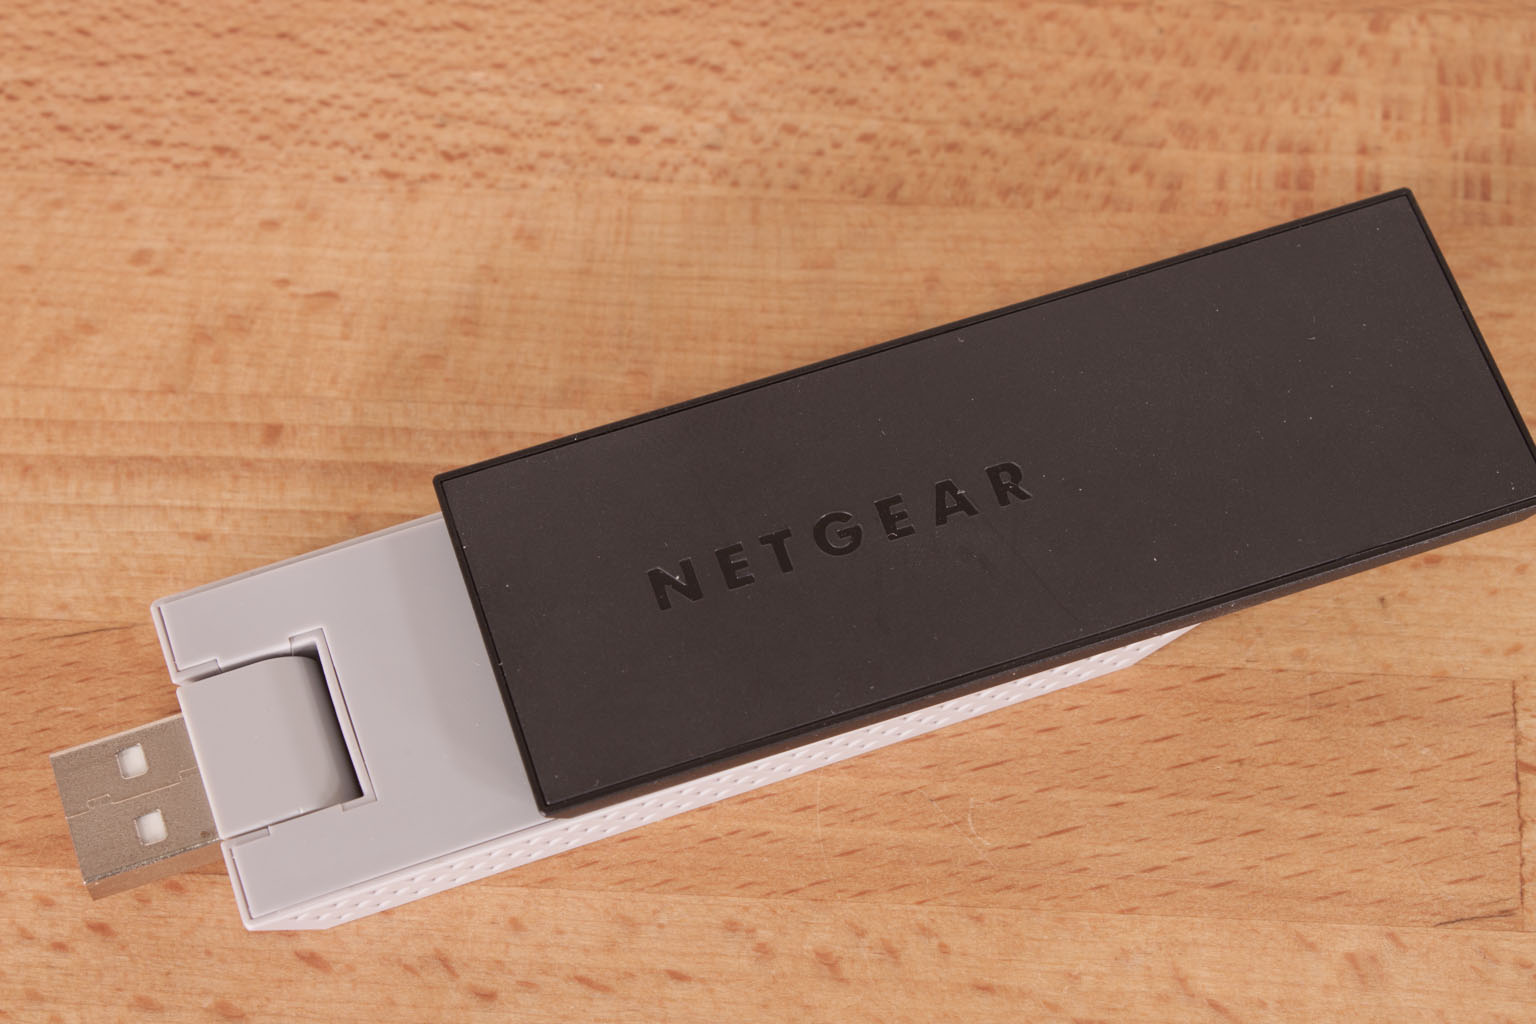 NETGEAR A6200 WIFI ADAPTER DRIVER WINDOWS XP